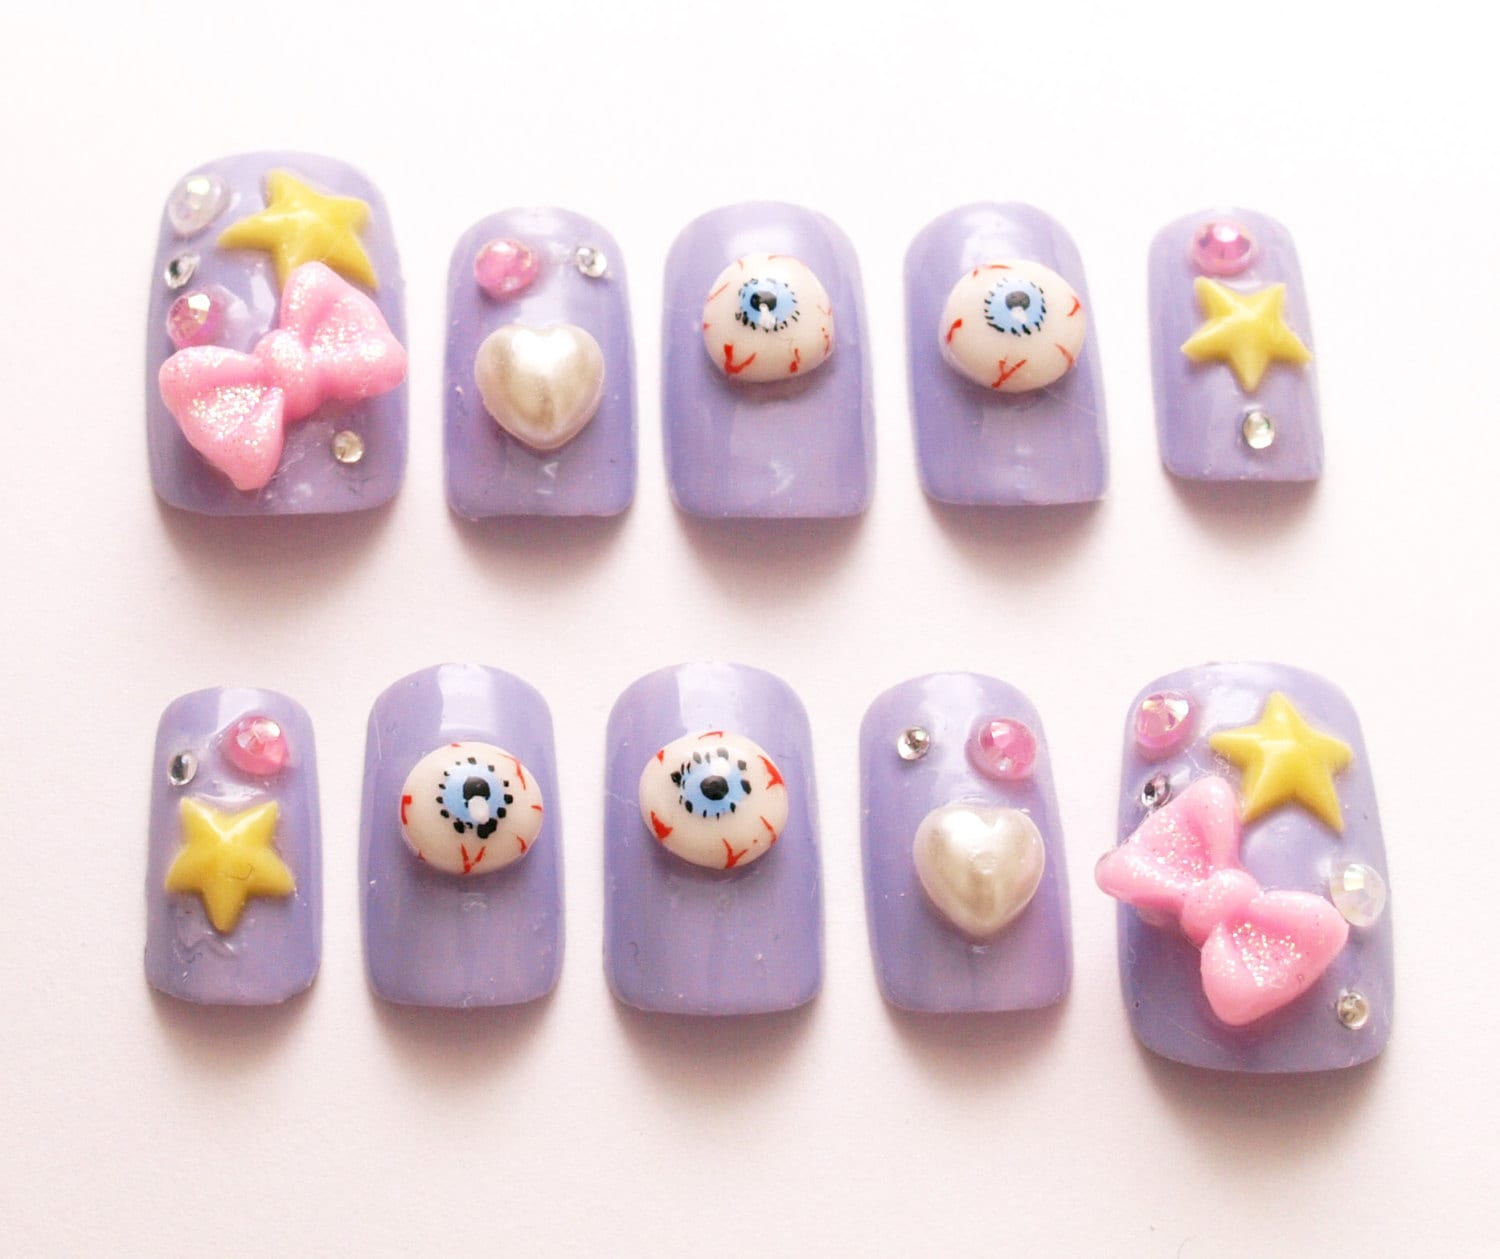 Pastel goth lilac deco nails Harajuku creepy kawaii 3D